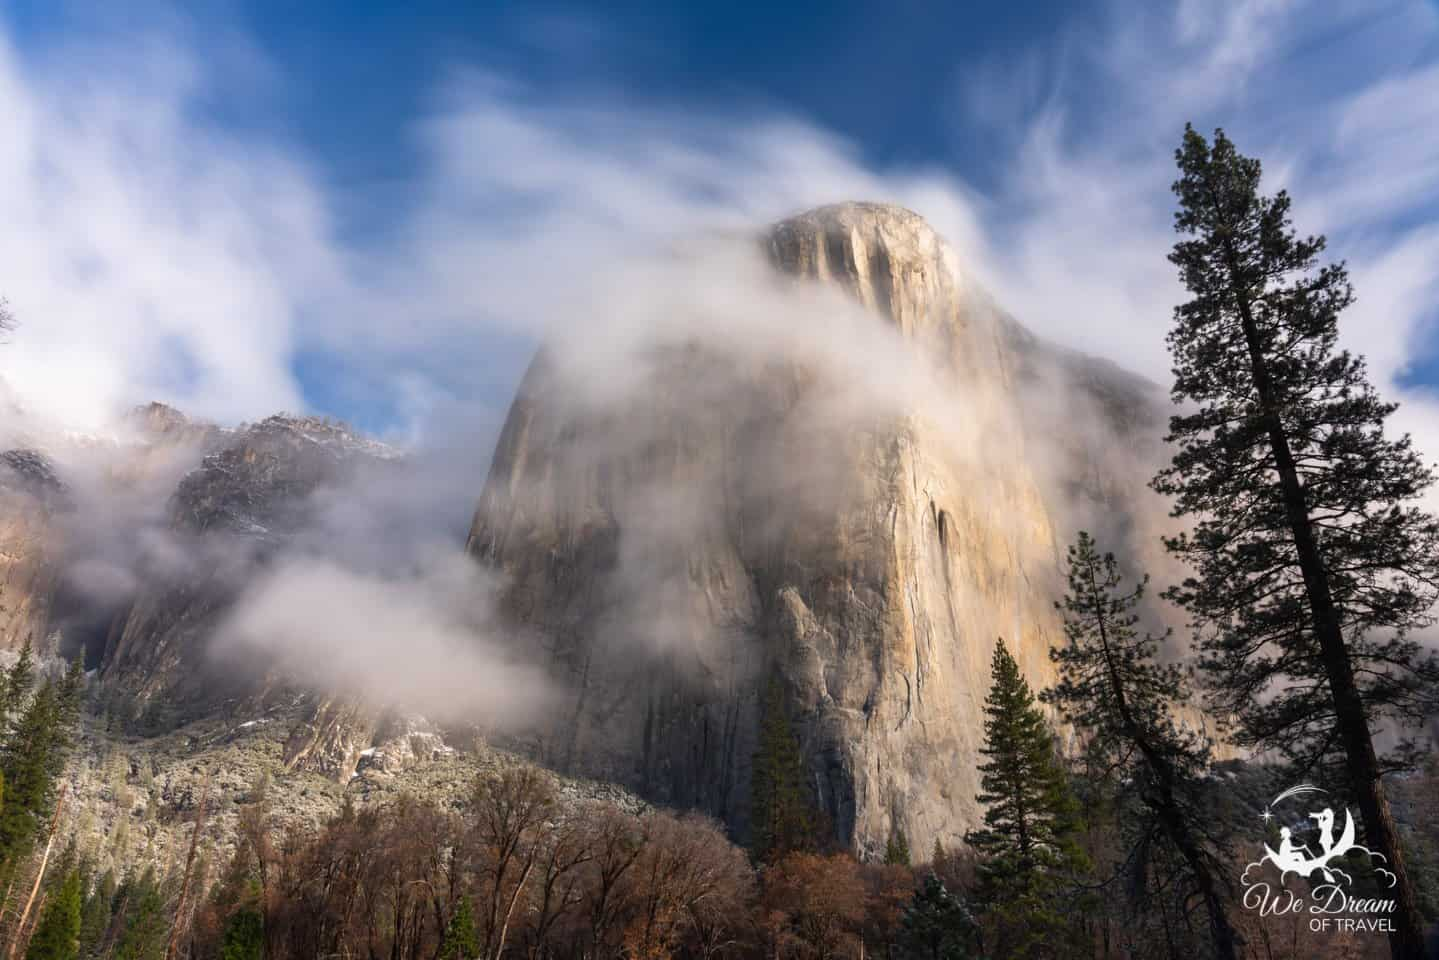 Enjoy breakfast with views of El Capitan on your day trip to Yosemite.